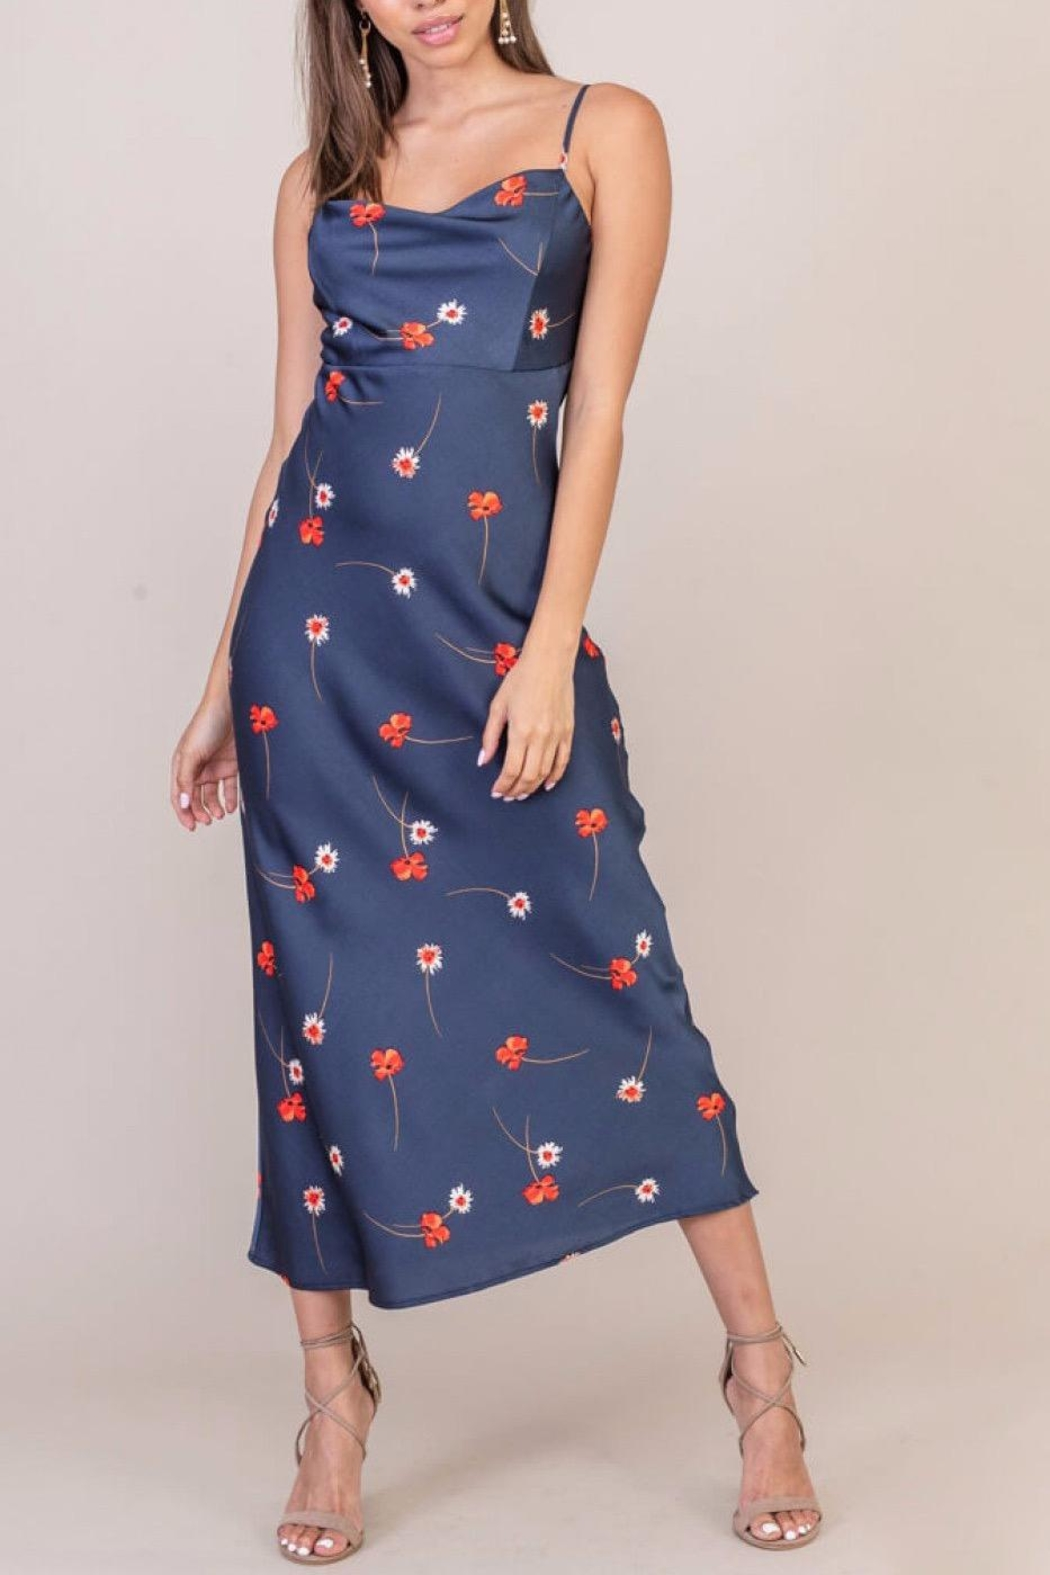 Lush Clothing  Floral Print Satin Dress - Front Cropped Image